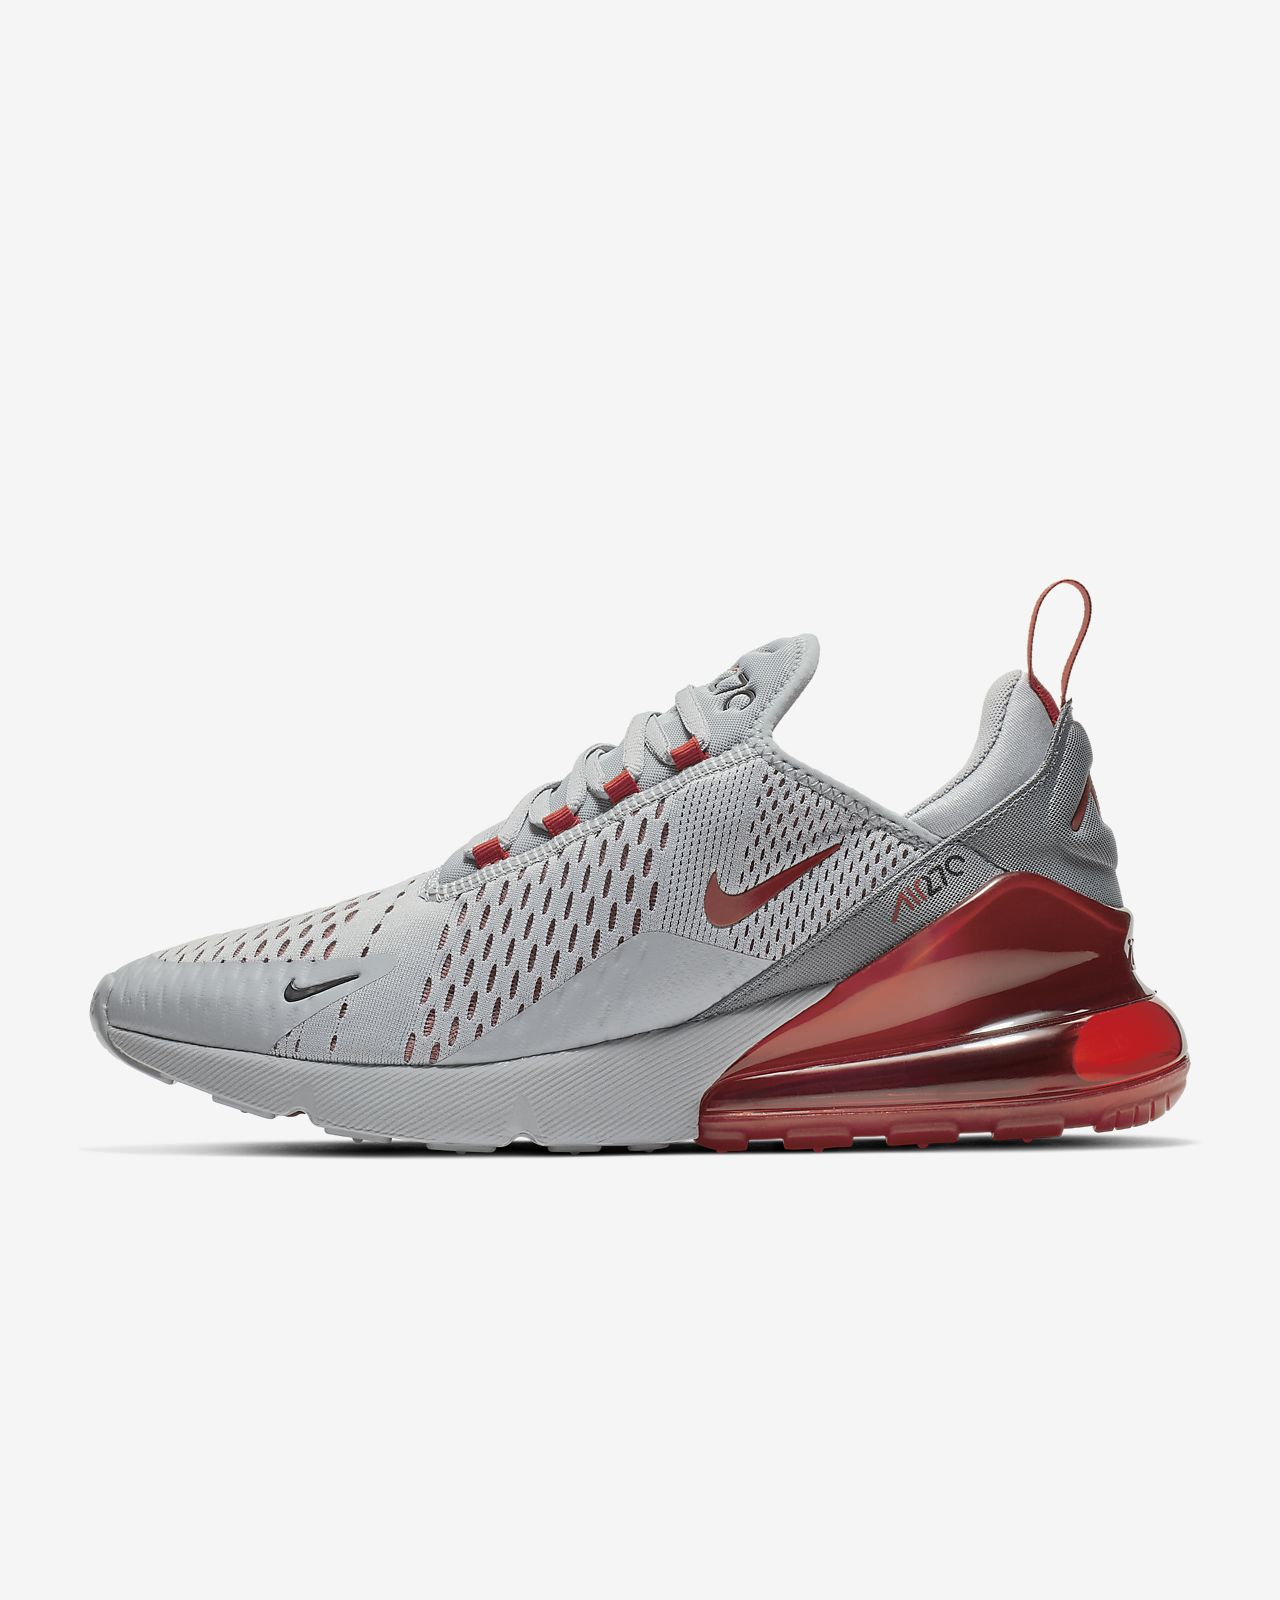 212f45a6989f Nike Air Max 270 Men s Shoe. Nike.com SG